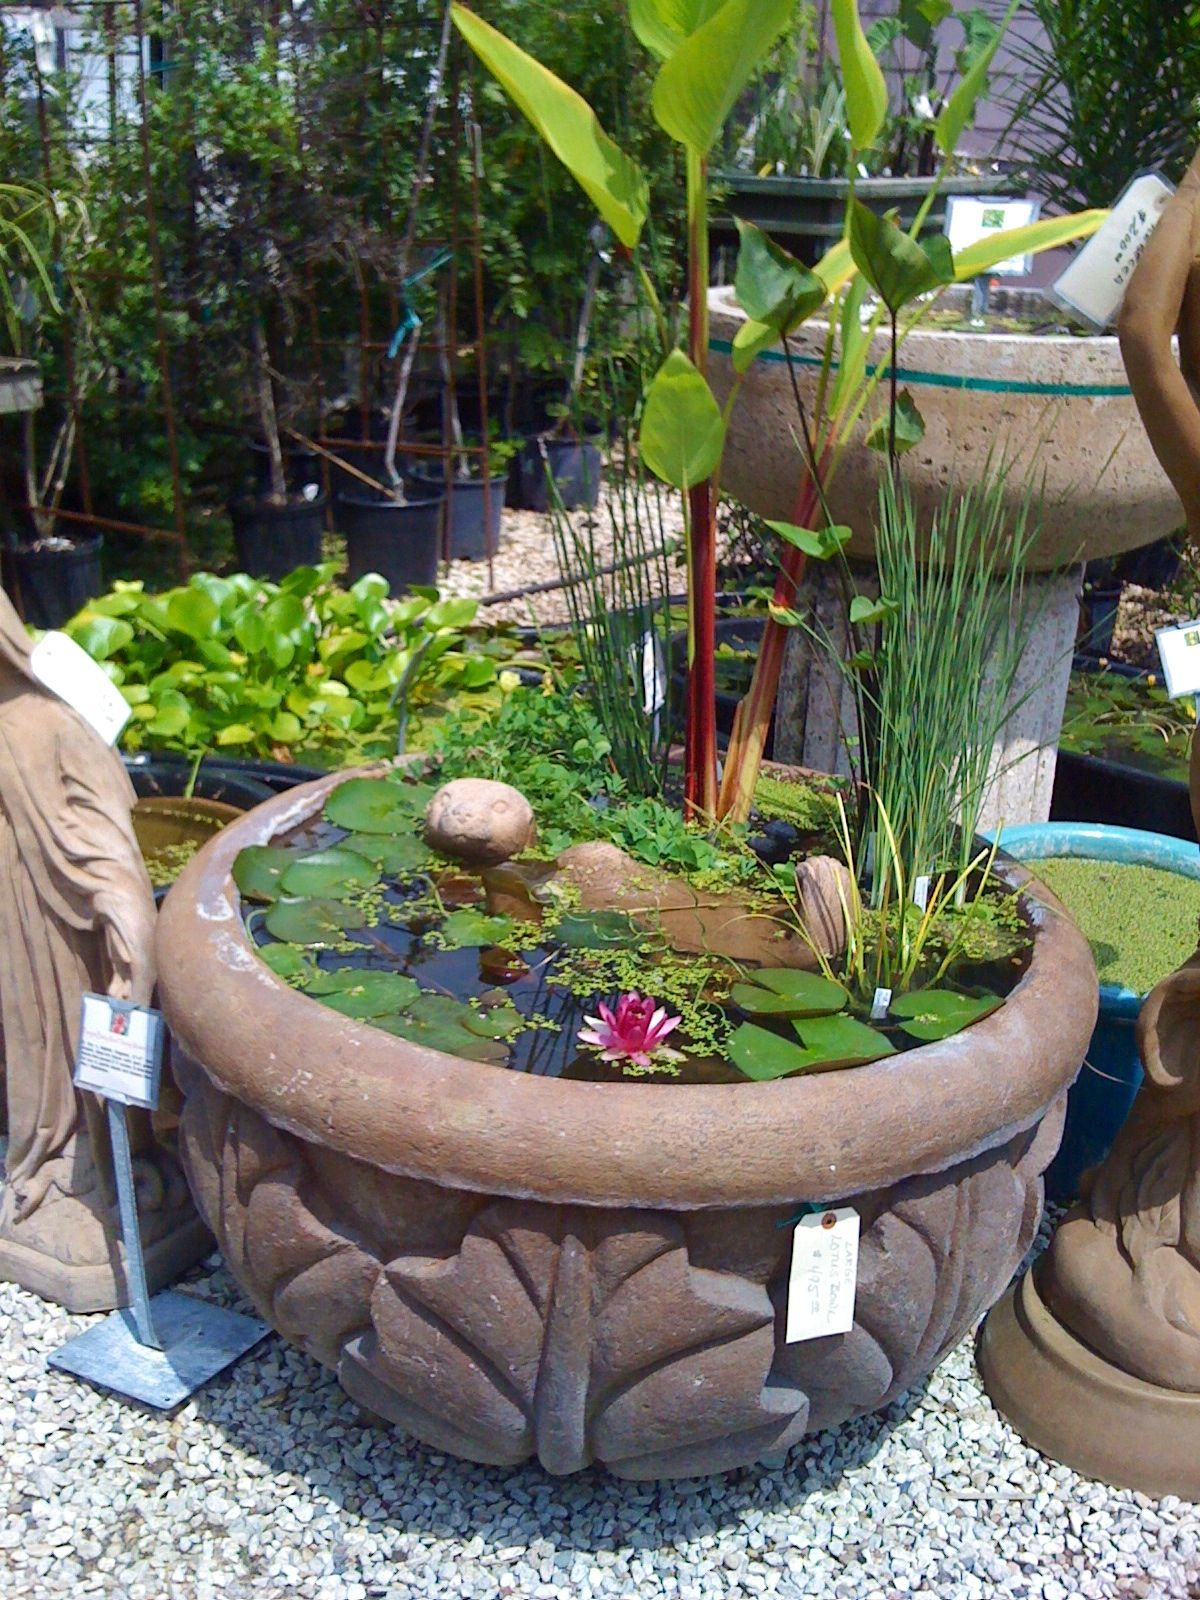 a small pond for a patio or yard. another view of the beautiful lotus bowl i posted earlier. every plant in the bowl had been left in its original one gallon black pot with soil. the pots were topped with gravel so the fish couldn't root out the plants with their little snouts. the pots were placed on bricks stacked to provide different heights for the plants depending on their depth requirements. this lotus bowl was a joy to make and I loved to look at it every day...if you would like a…